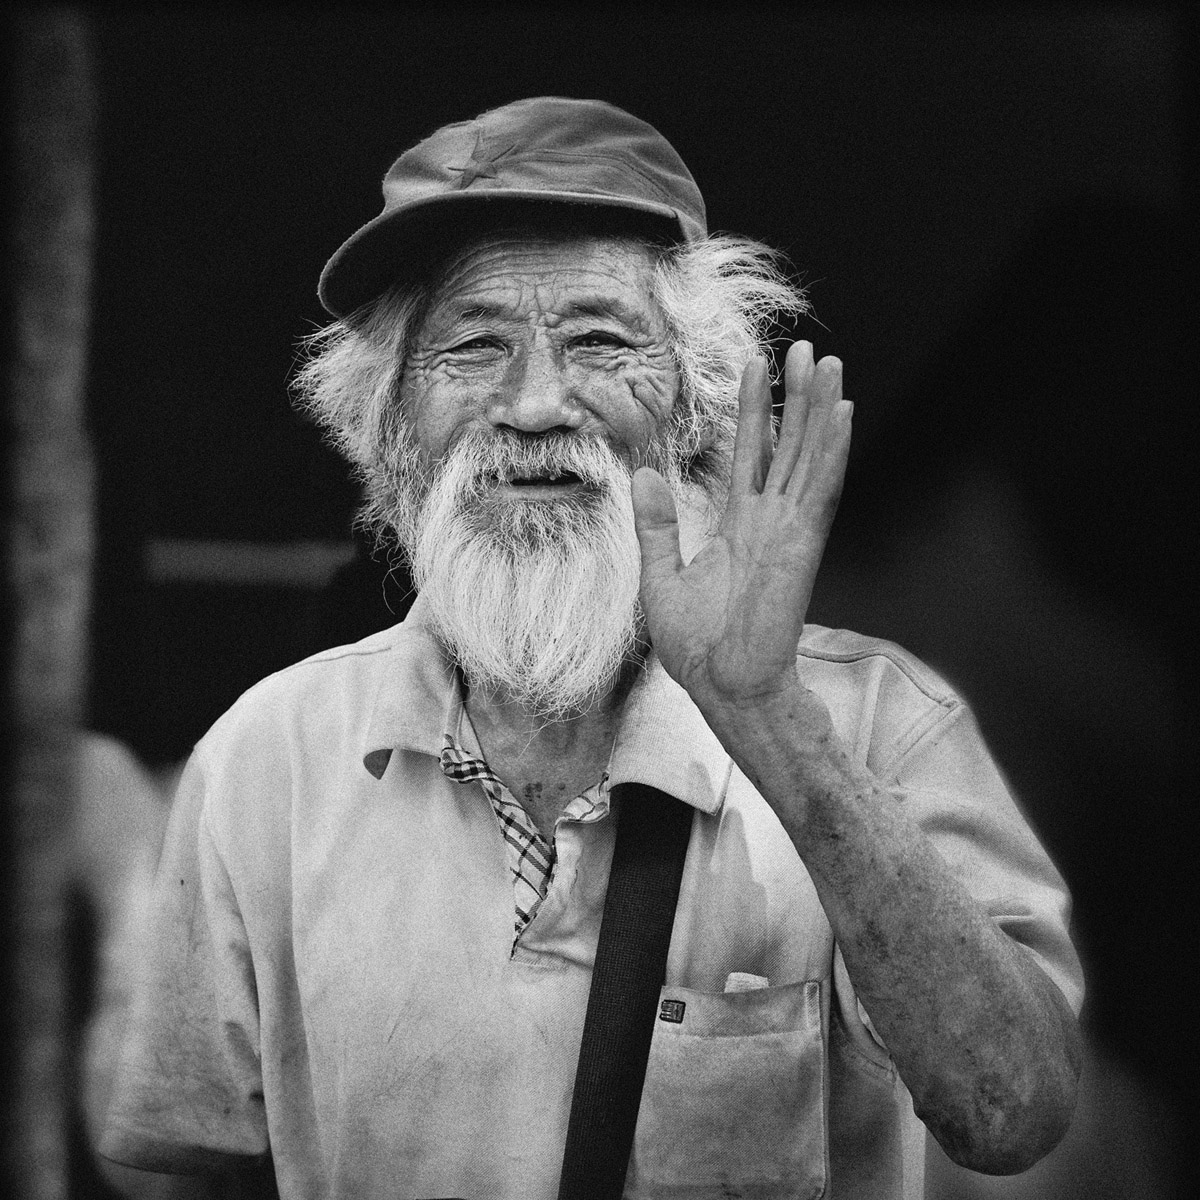 Beijing local man, Tonchee, Burberry Shirt Advert, Black and white Travel photography Chine, Beijing, Smiling Chinaman